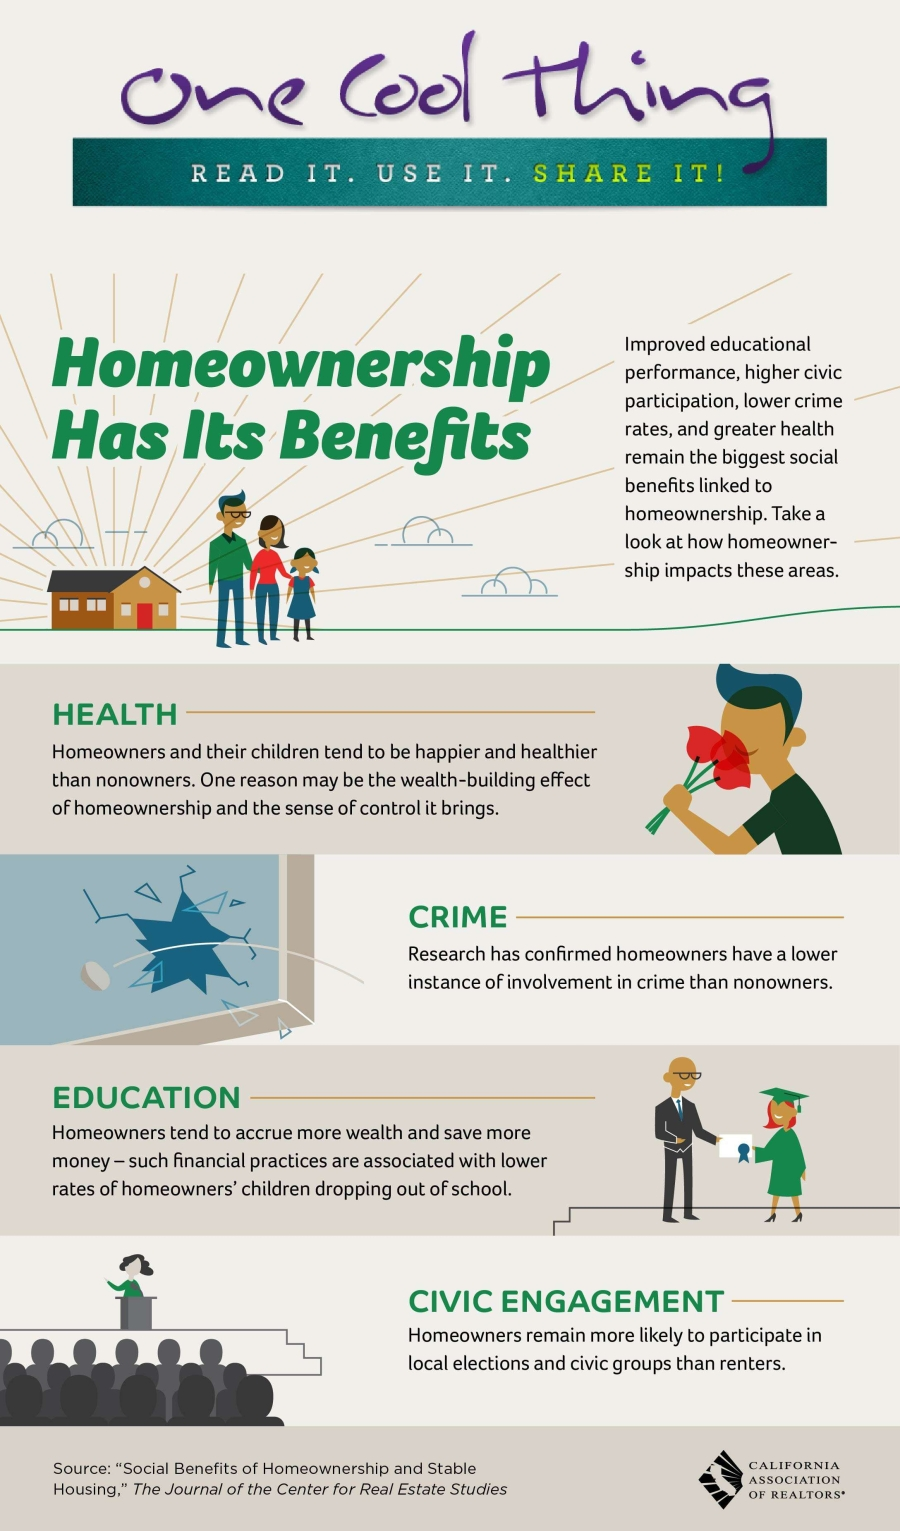 homeownership-benefits-hi-res.jpg